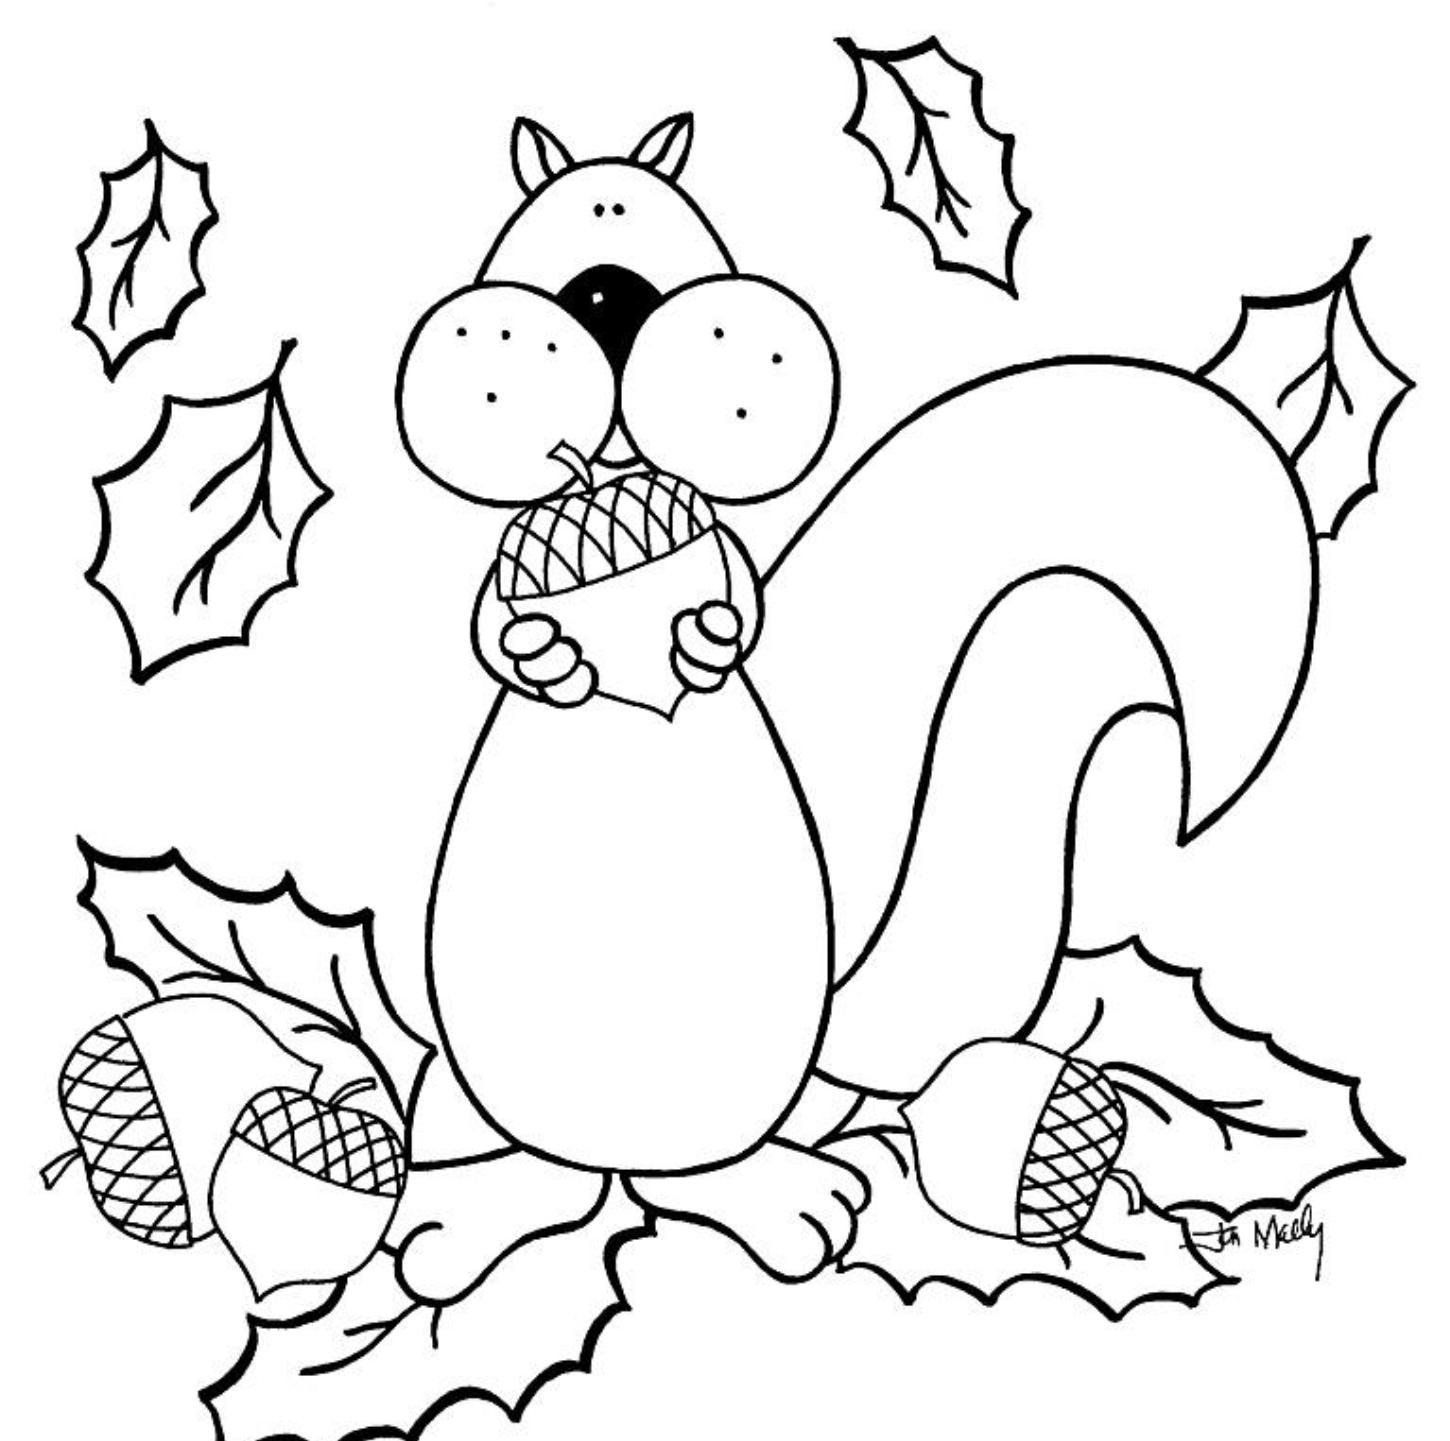 Pin On Top Coloring Pages Ideas For Kid And Adult